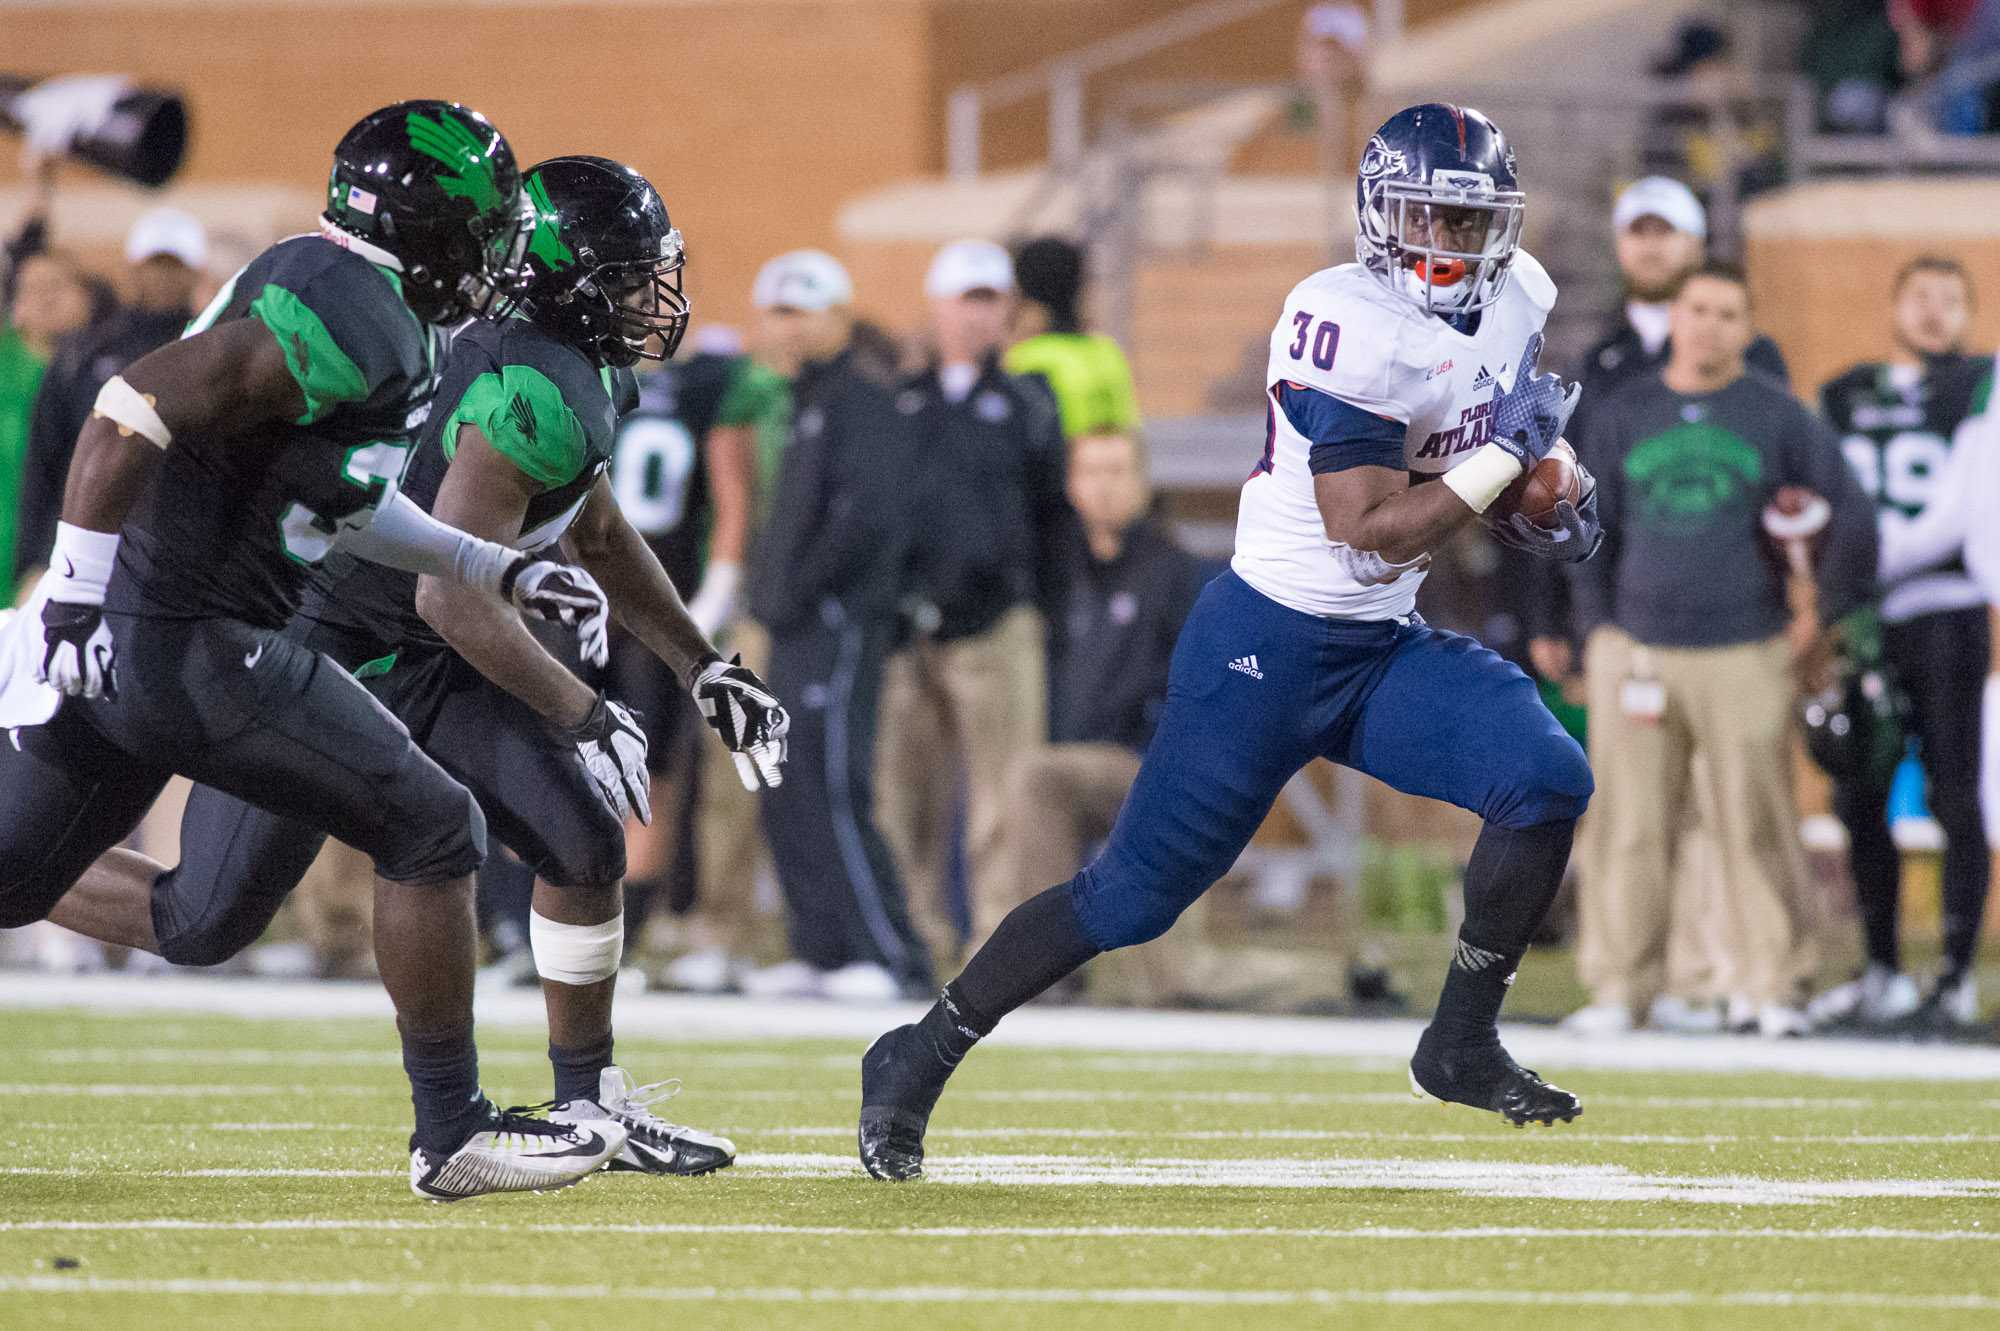 [ Max Jackson | Photo Editor ] FAU running back Jeremy Gaskins rushes for 12 yards on 2nd and 4 to pick up a first down in the third quarter. Gaskins led the team with 38 rushing yards.